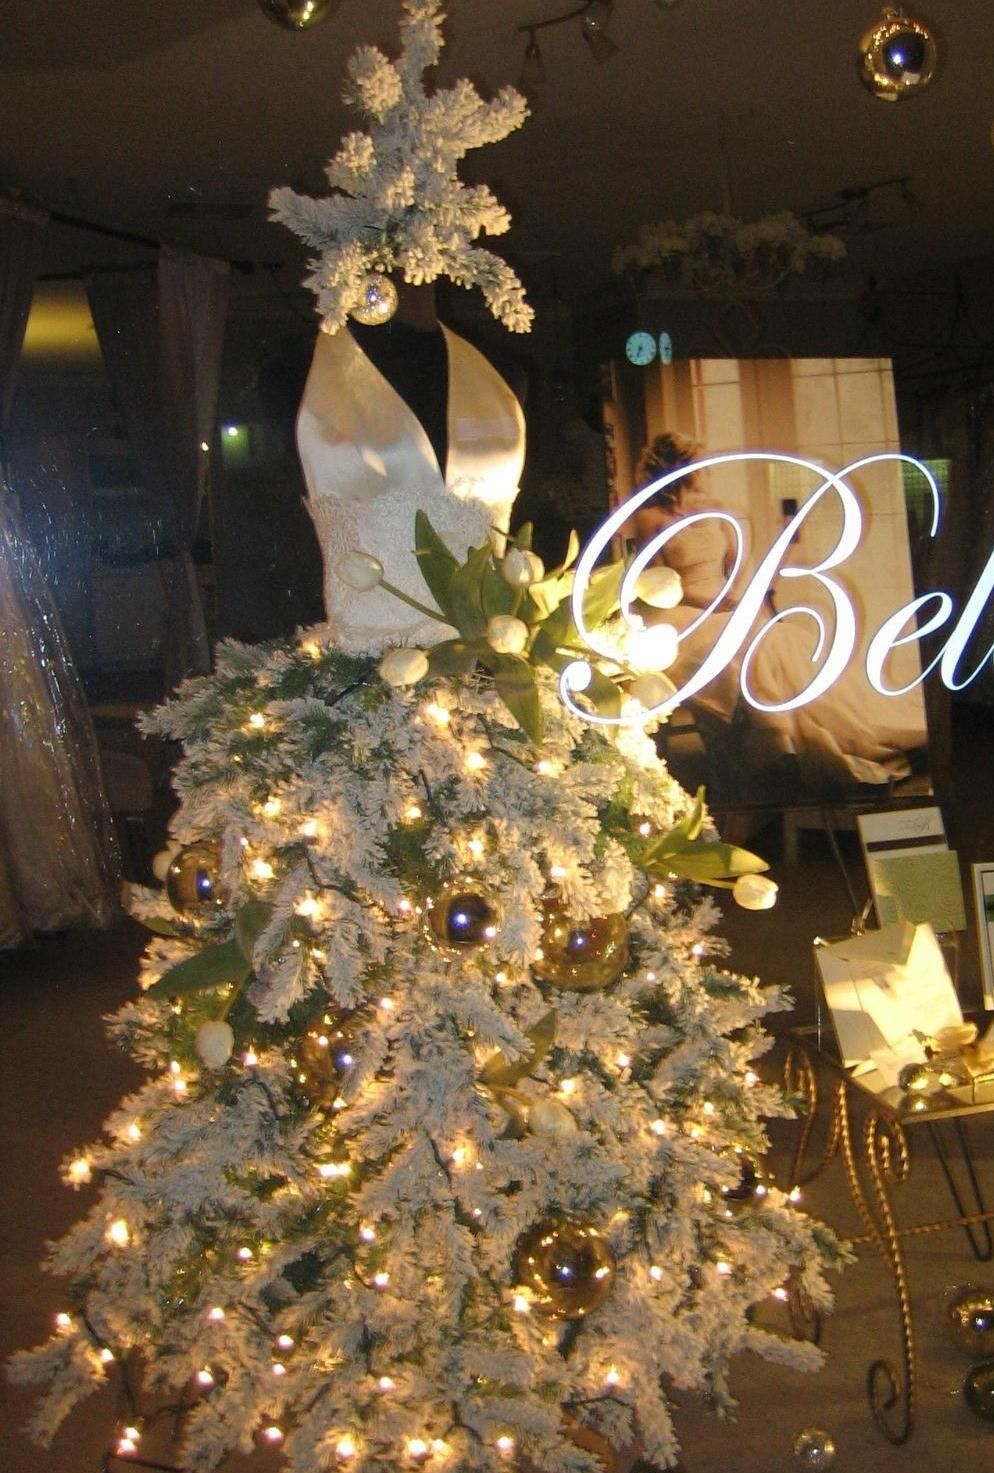 Singlewide designs christmas mannequin window displays pinterest